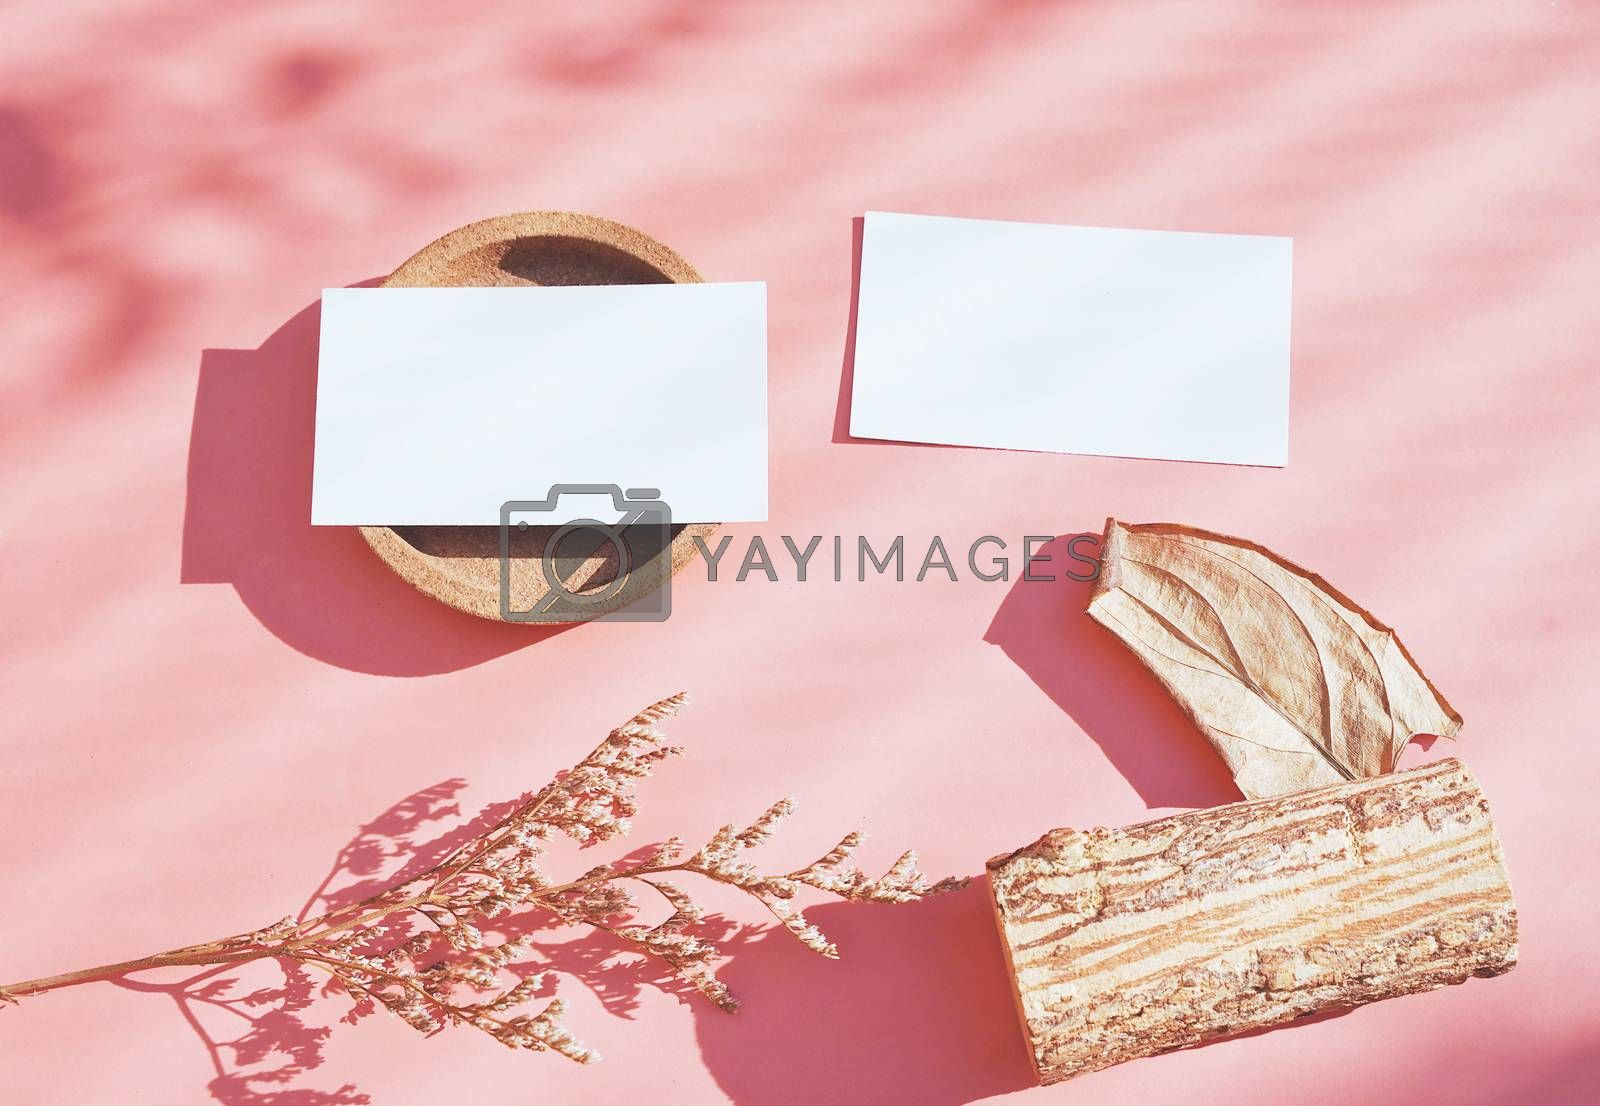 Royalty free image of Flat lay of branding identity business name card on with dry flo by nuchylee